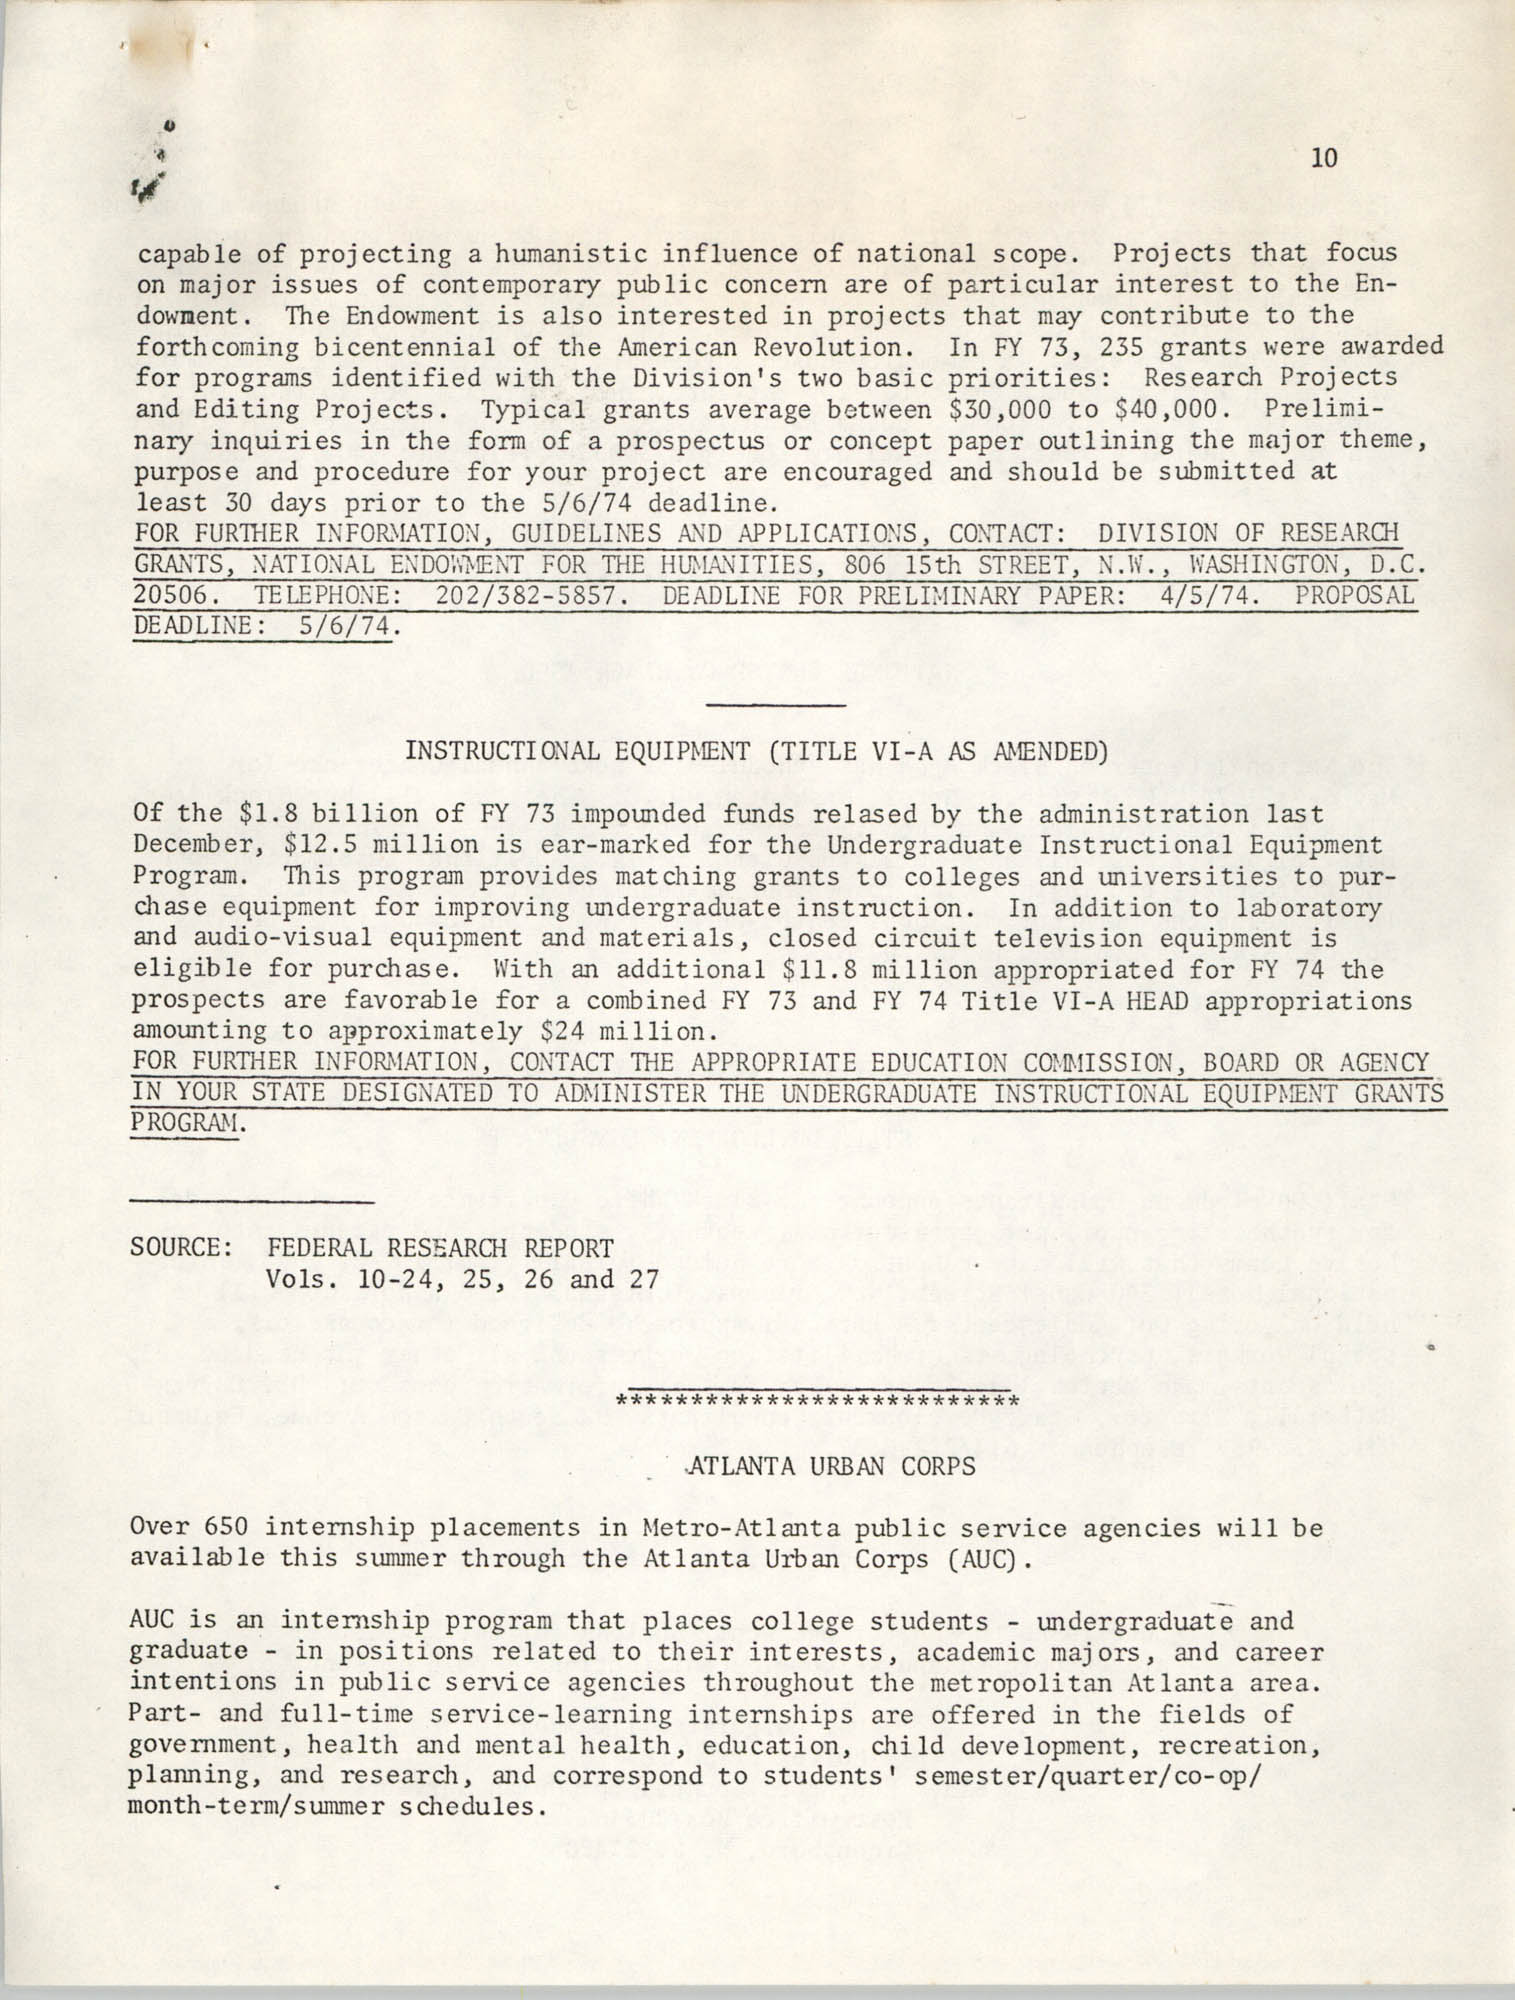 SHARE, Volume II, Number 3, March 1974, Page 10